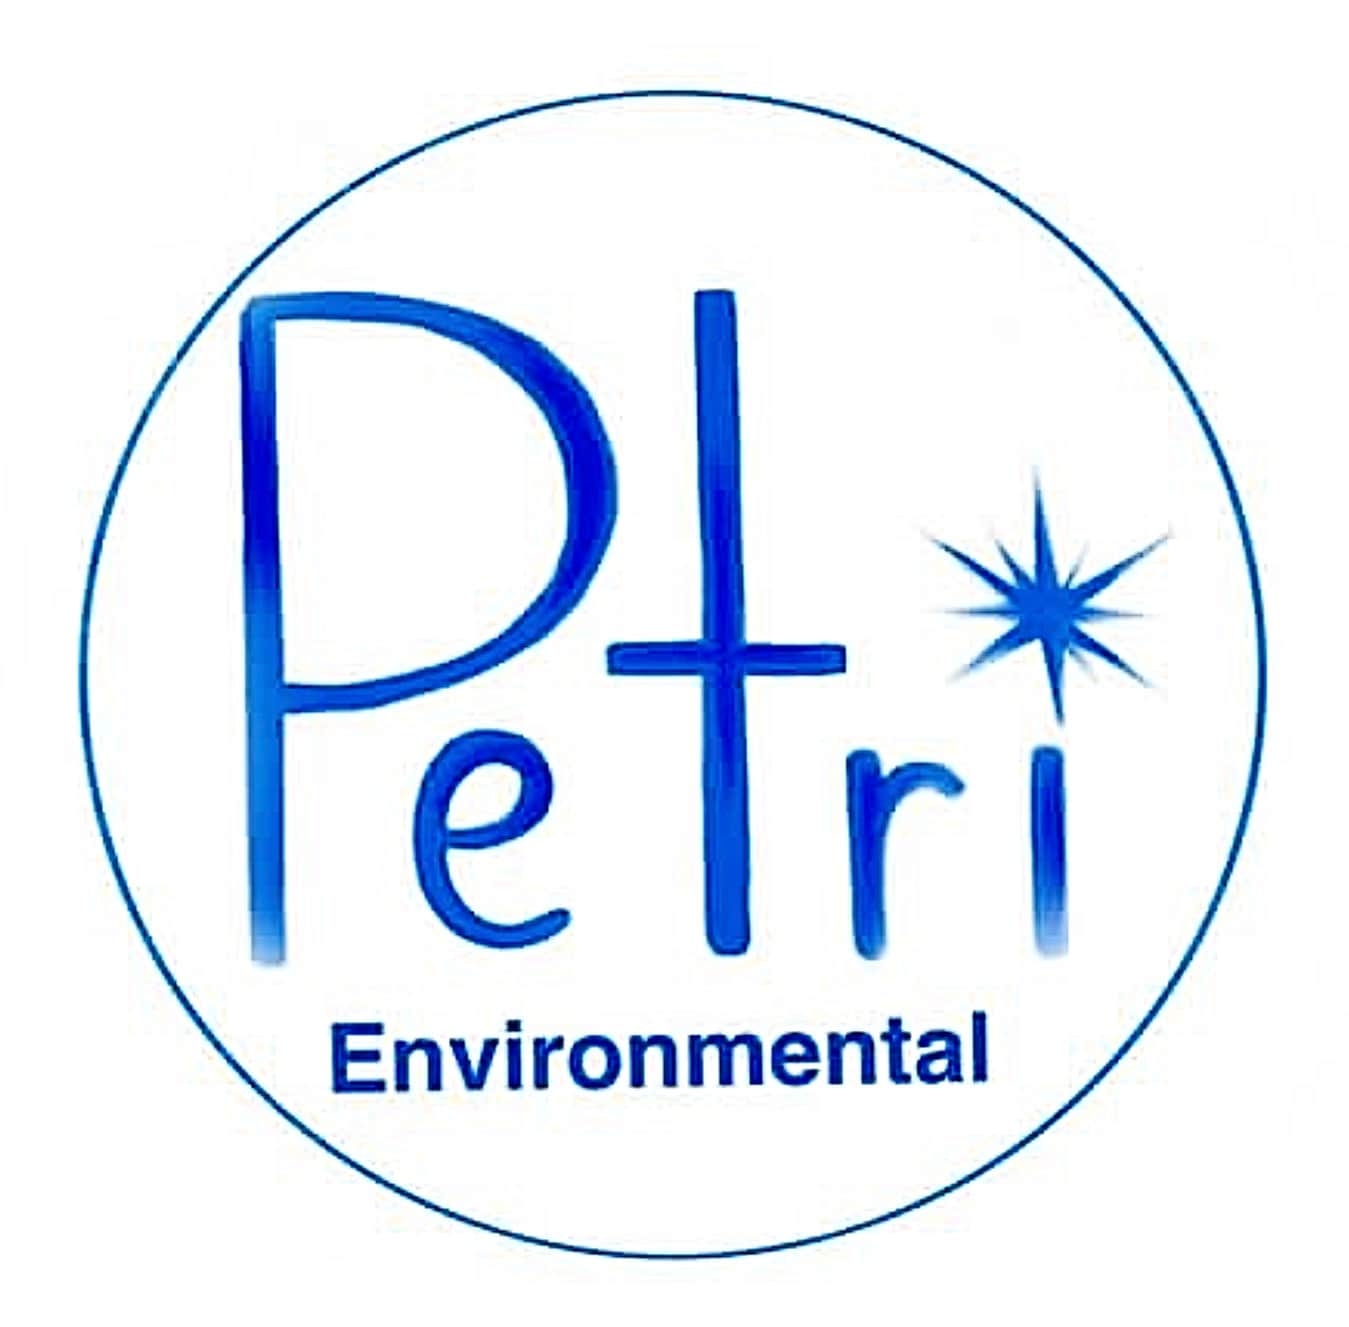 Petri Environmental Llc